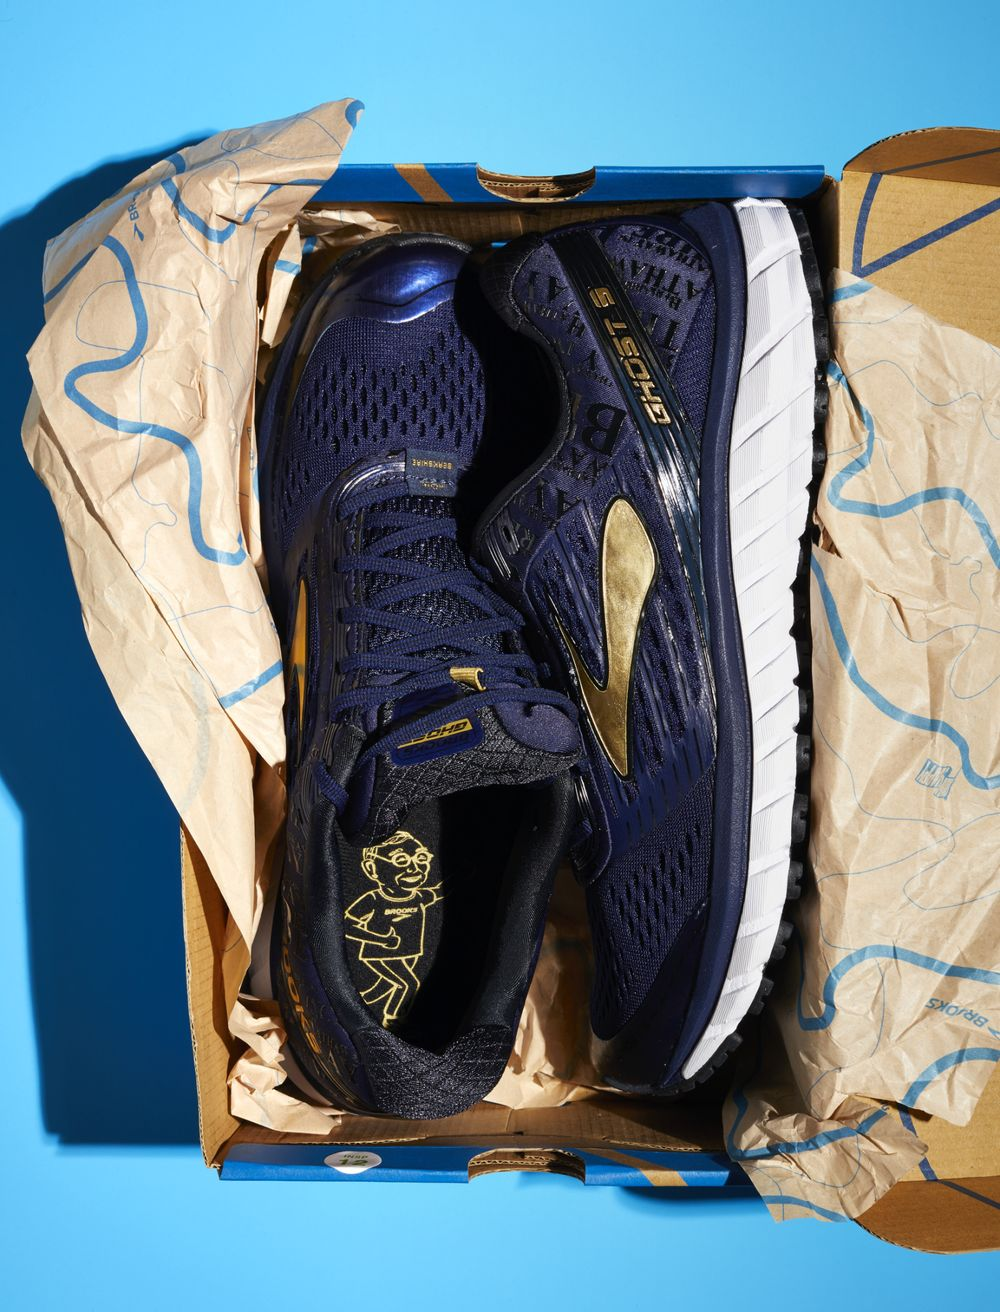 bc60972a9c4 Why Brooks Needs Runners Who Hate to Run - Bloomberg